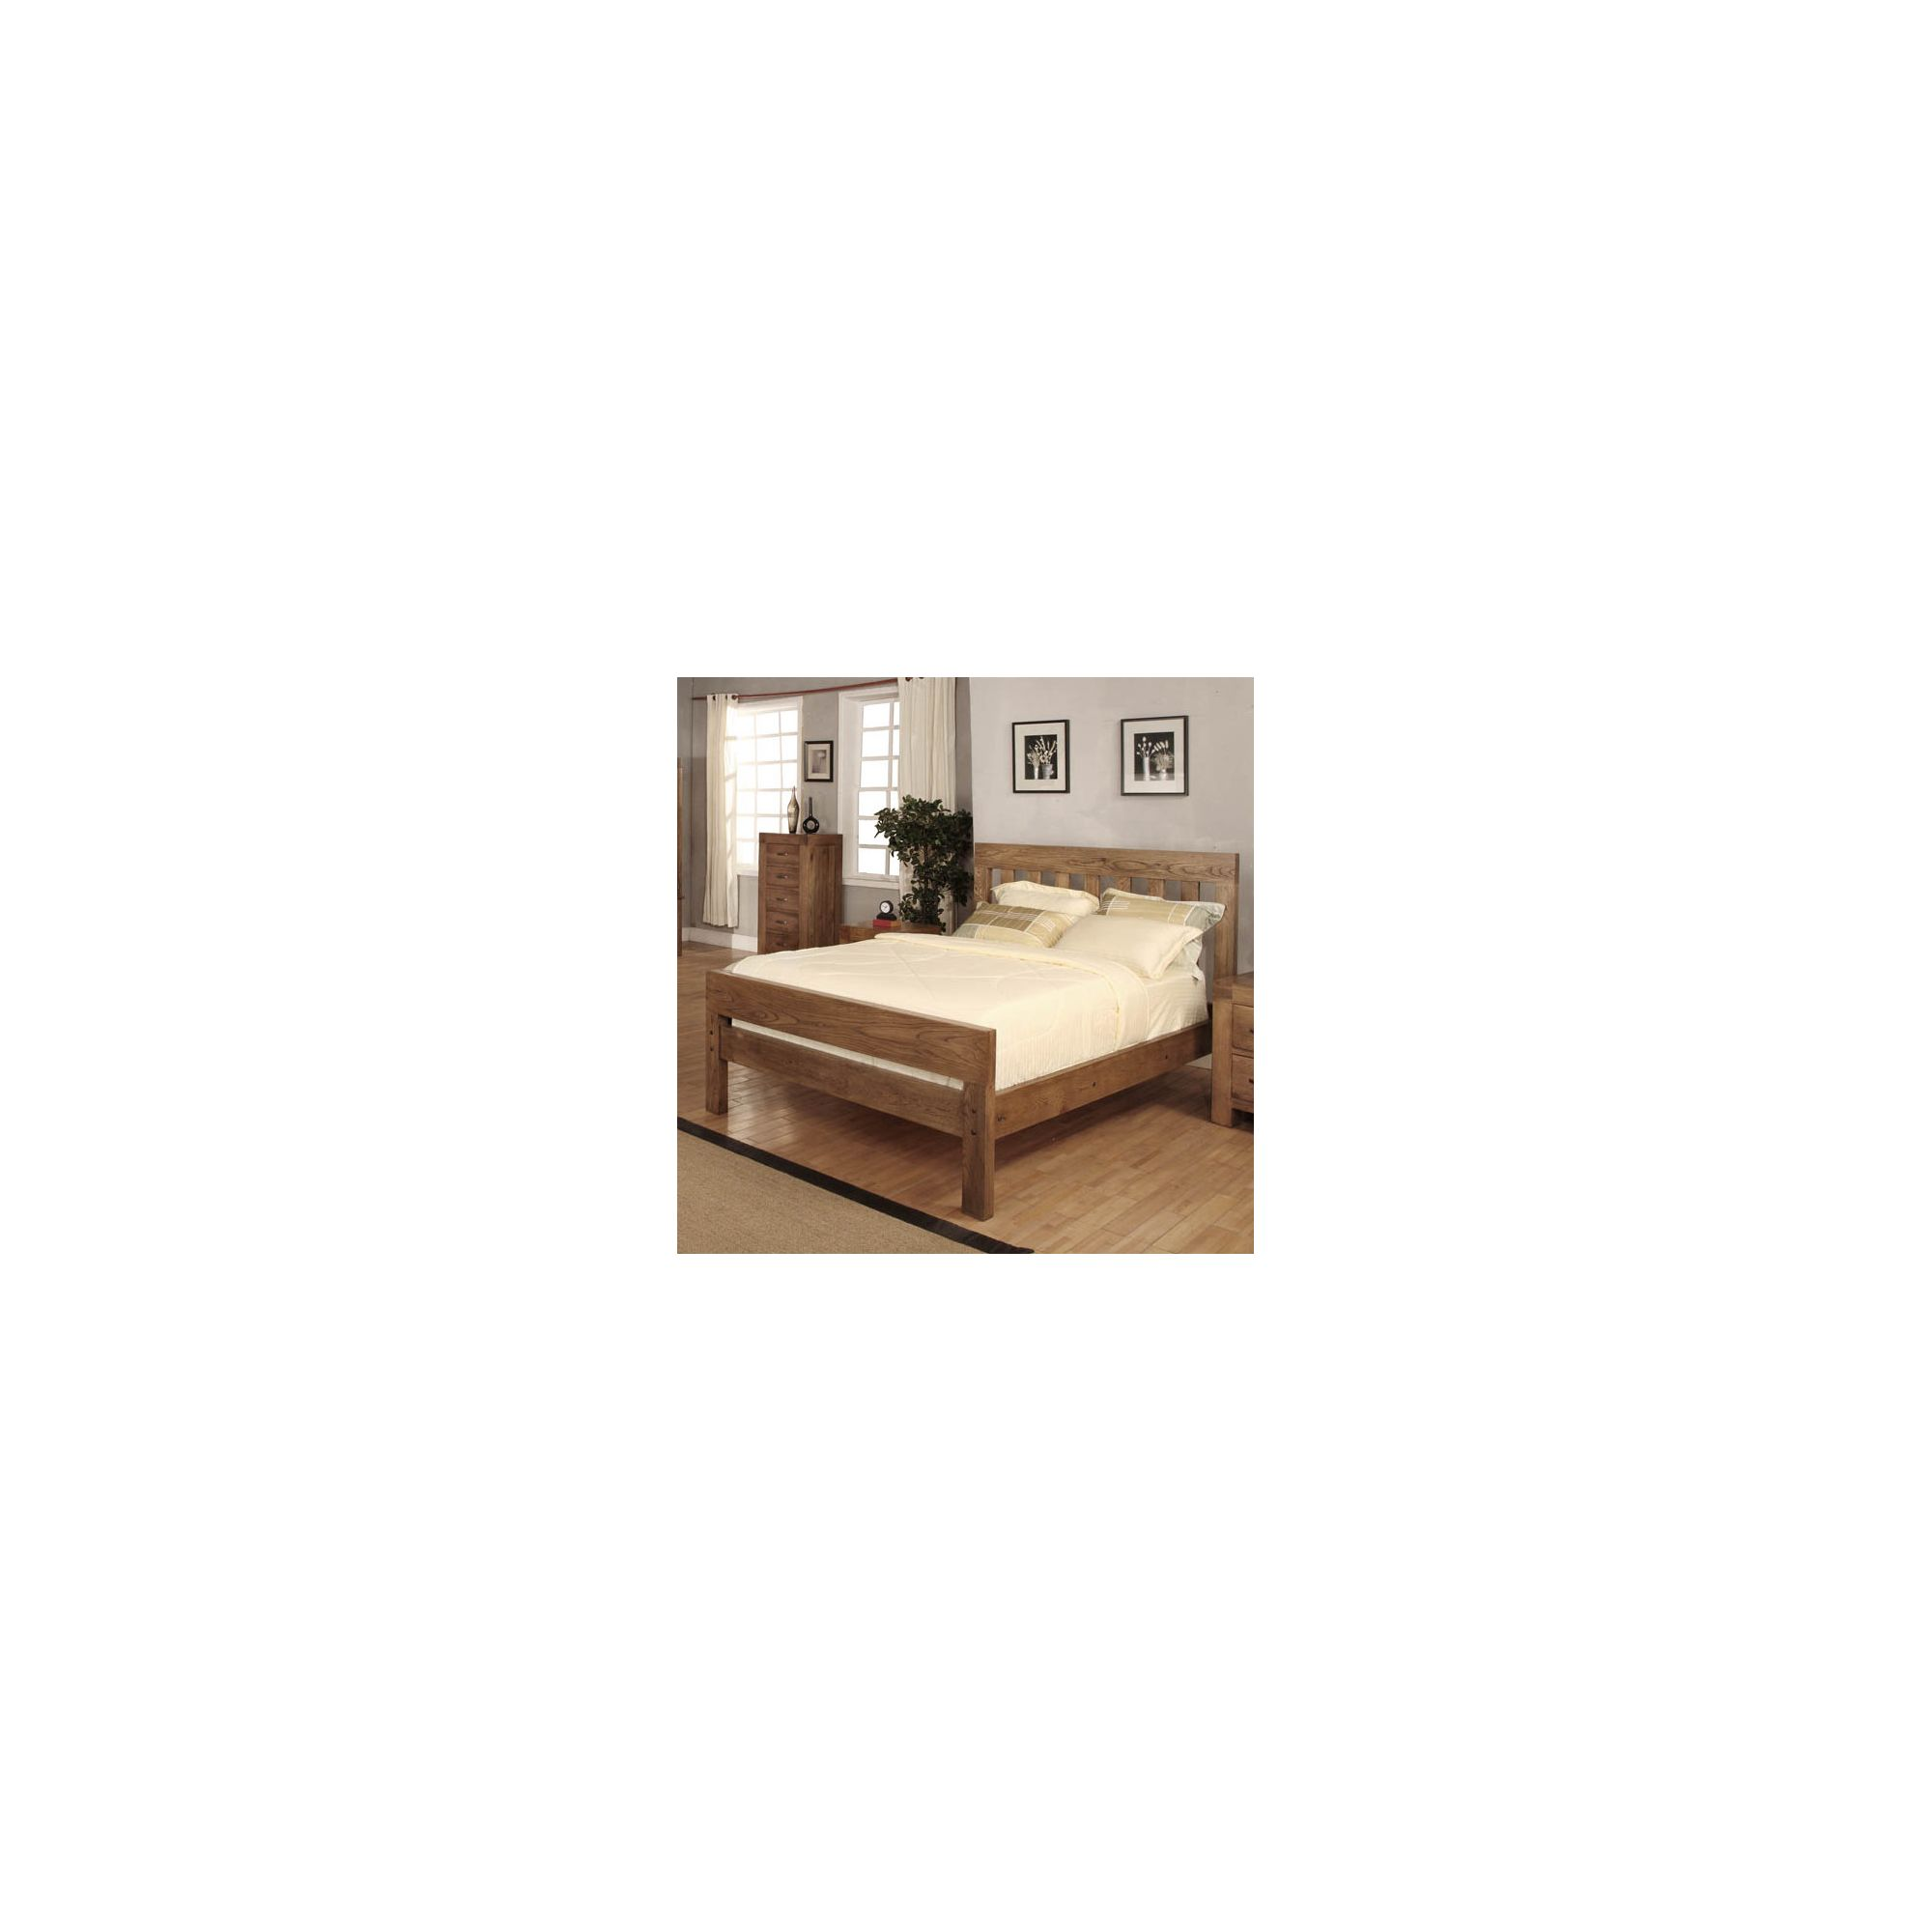 Hawkshead Santana Bed Frame - 5' King at Tescos Direct